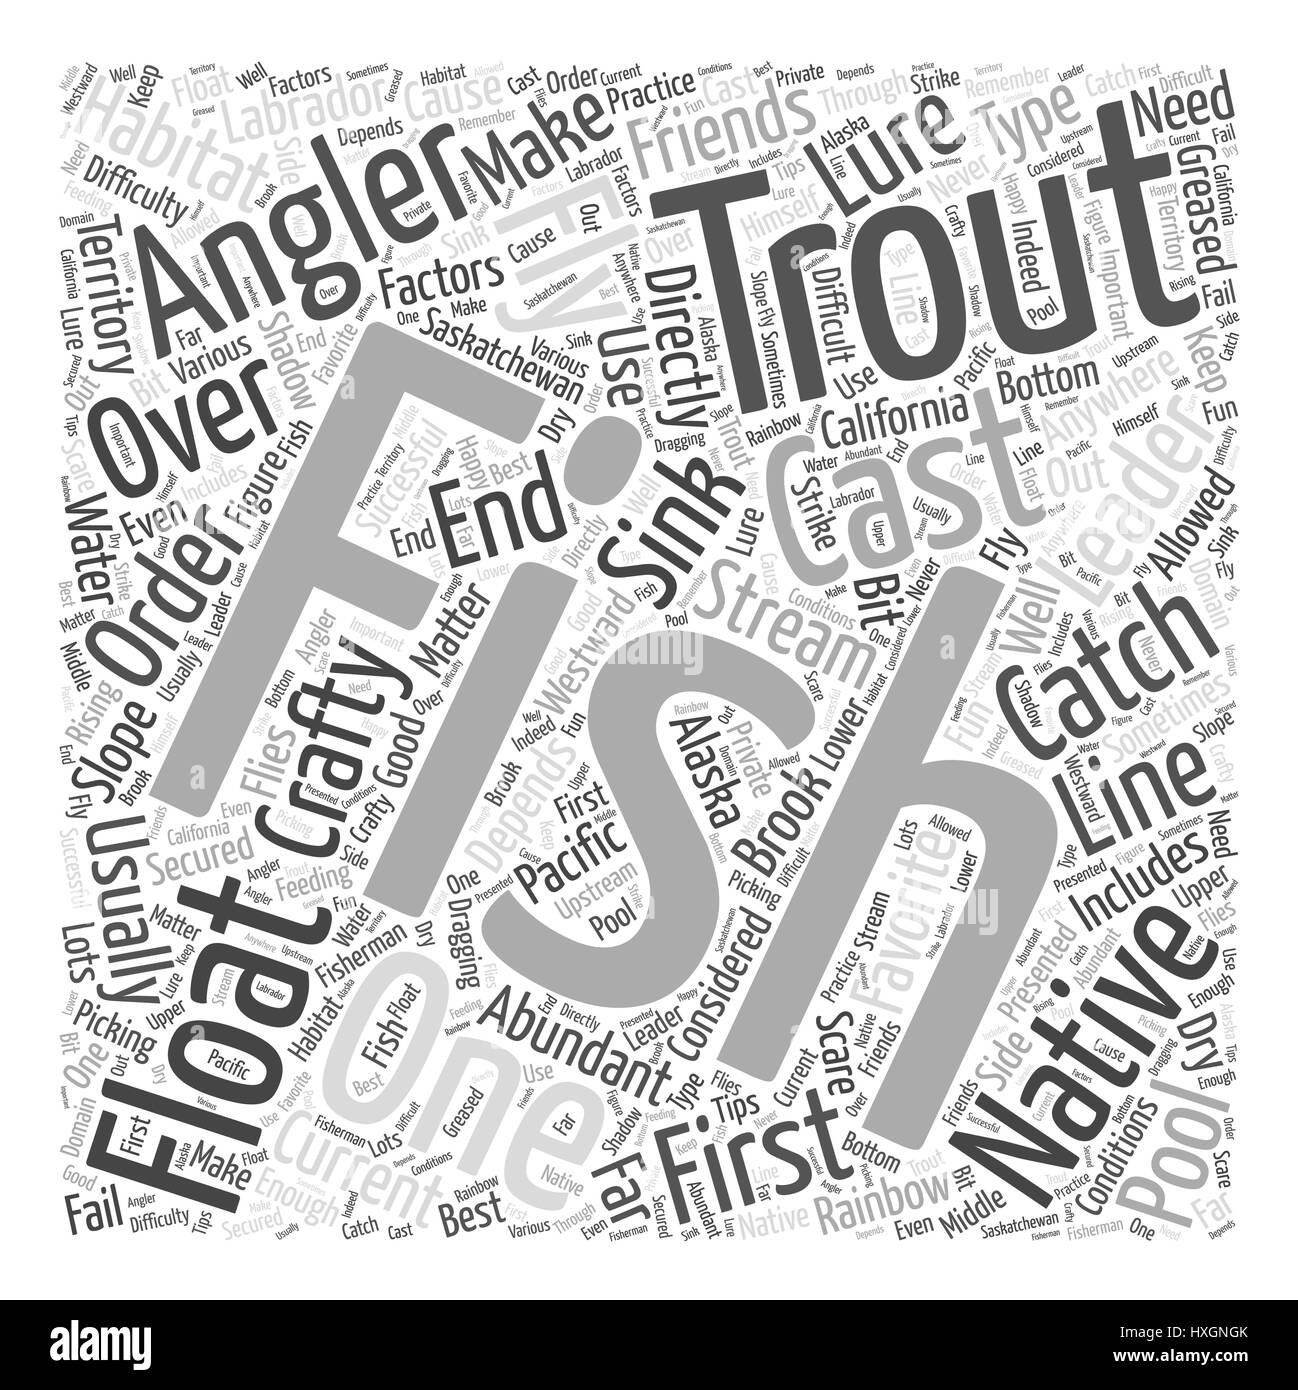 SF trout fishing tips Word Cloud Concept Stock Vector Art